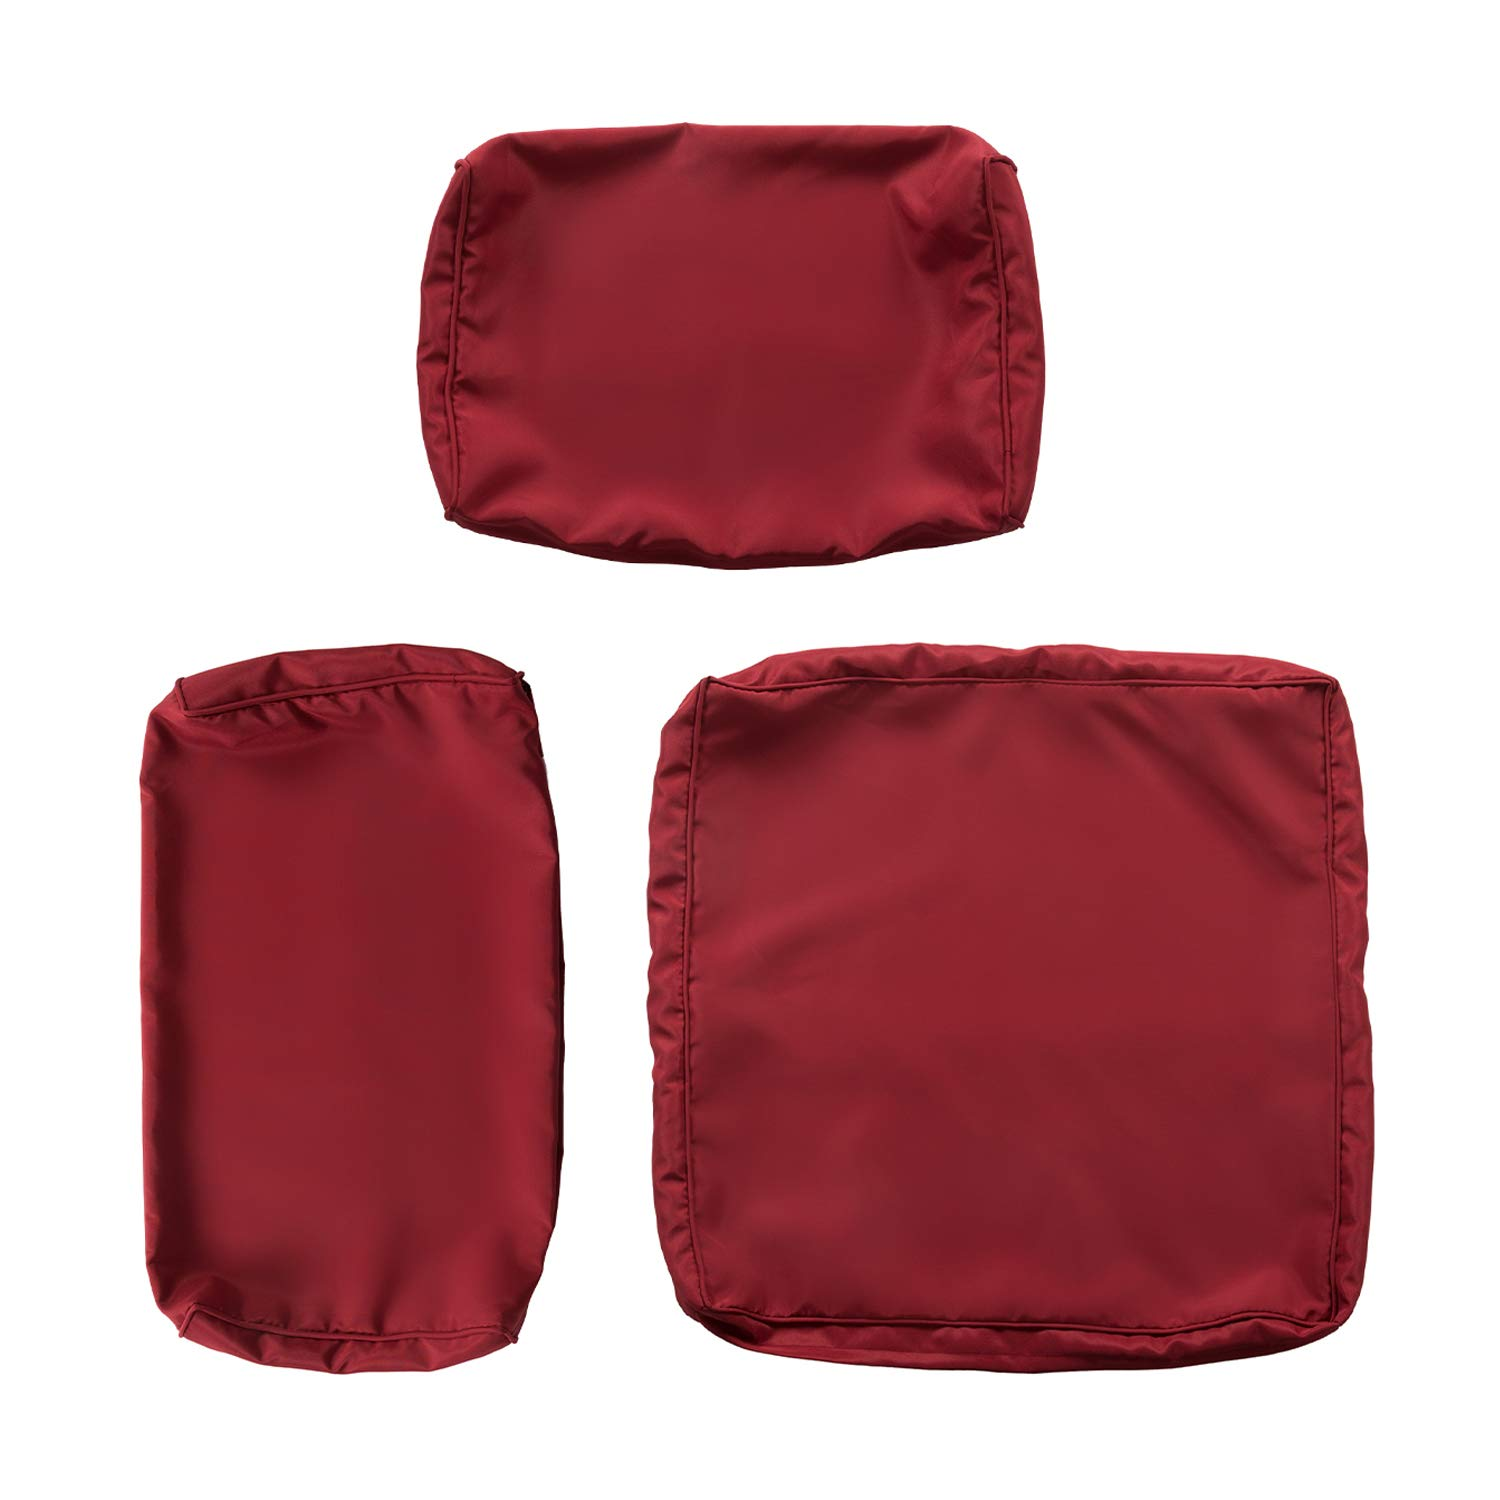 Burgundy Kinsunny Peach Tree 7 PCs Outdoor Patio Wicker Sofa Chair Washable Cushions Pillow Replacement Covers for Seat and Back